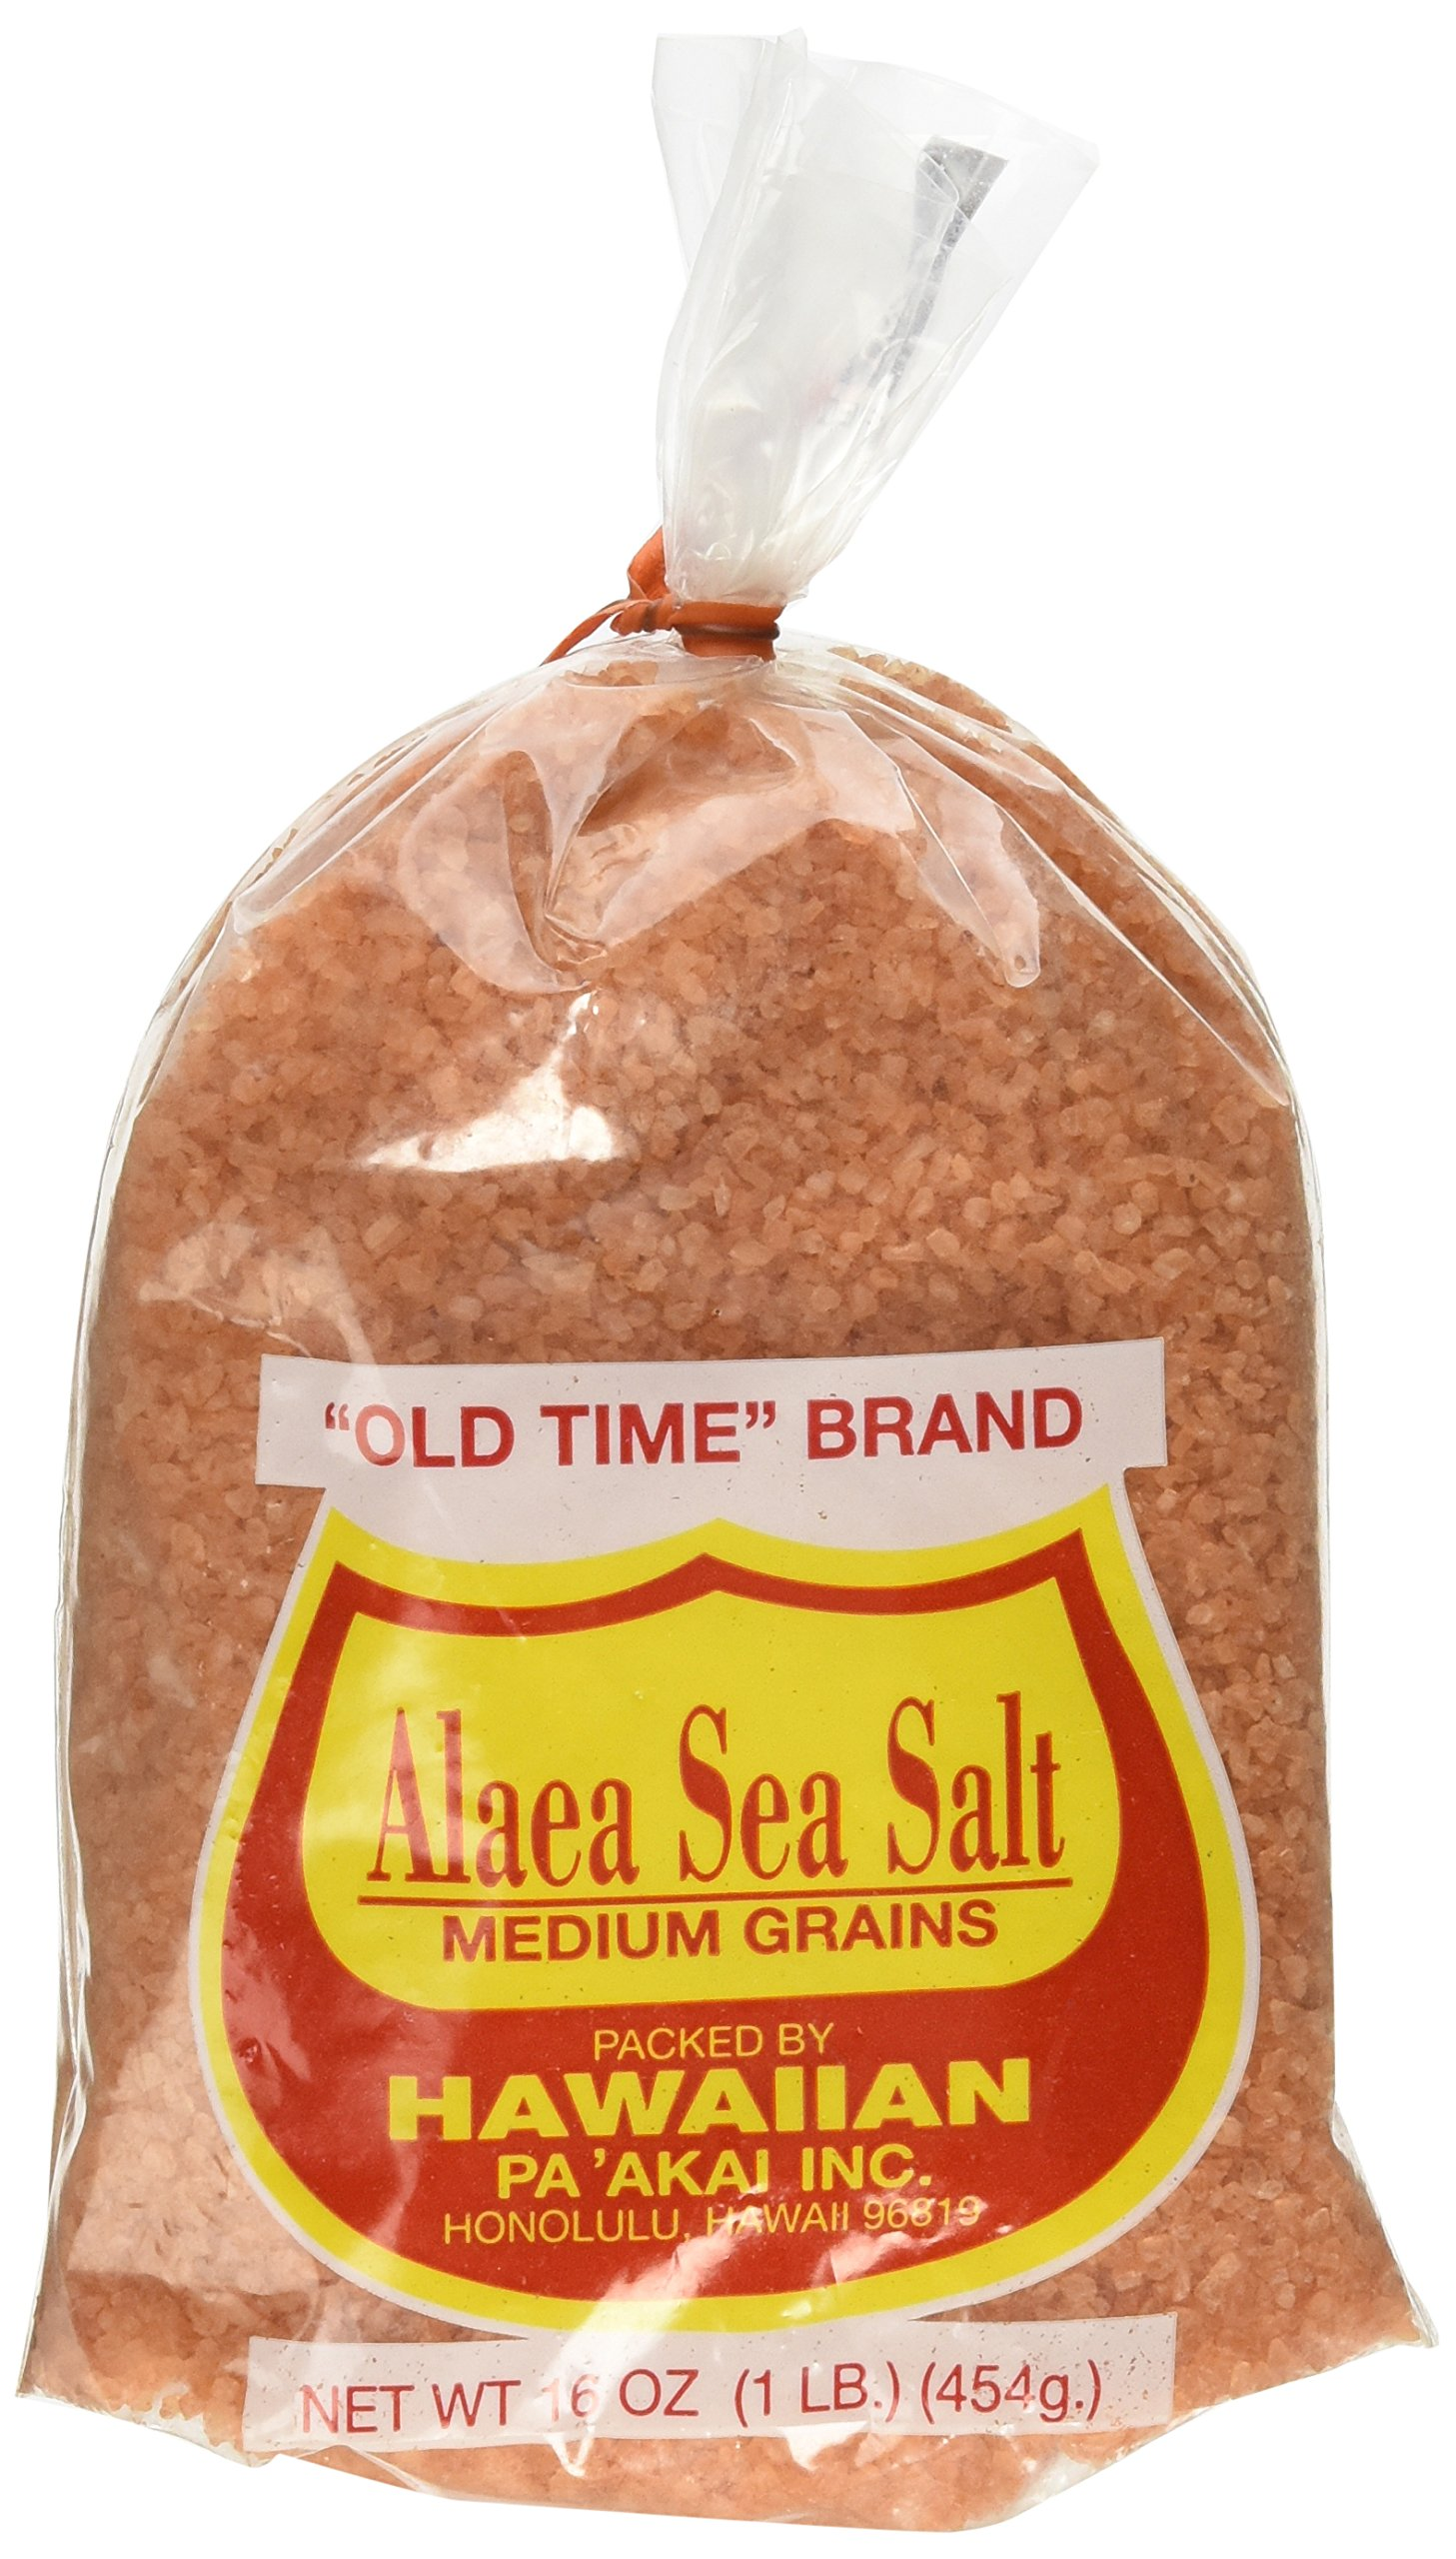 Hawaiian Pa'Akai Inc, Alaea Sea Salt Medium Grains, 16 oz